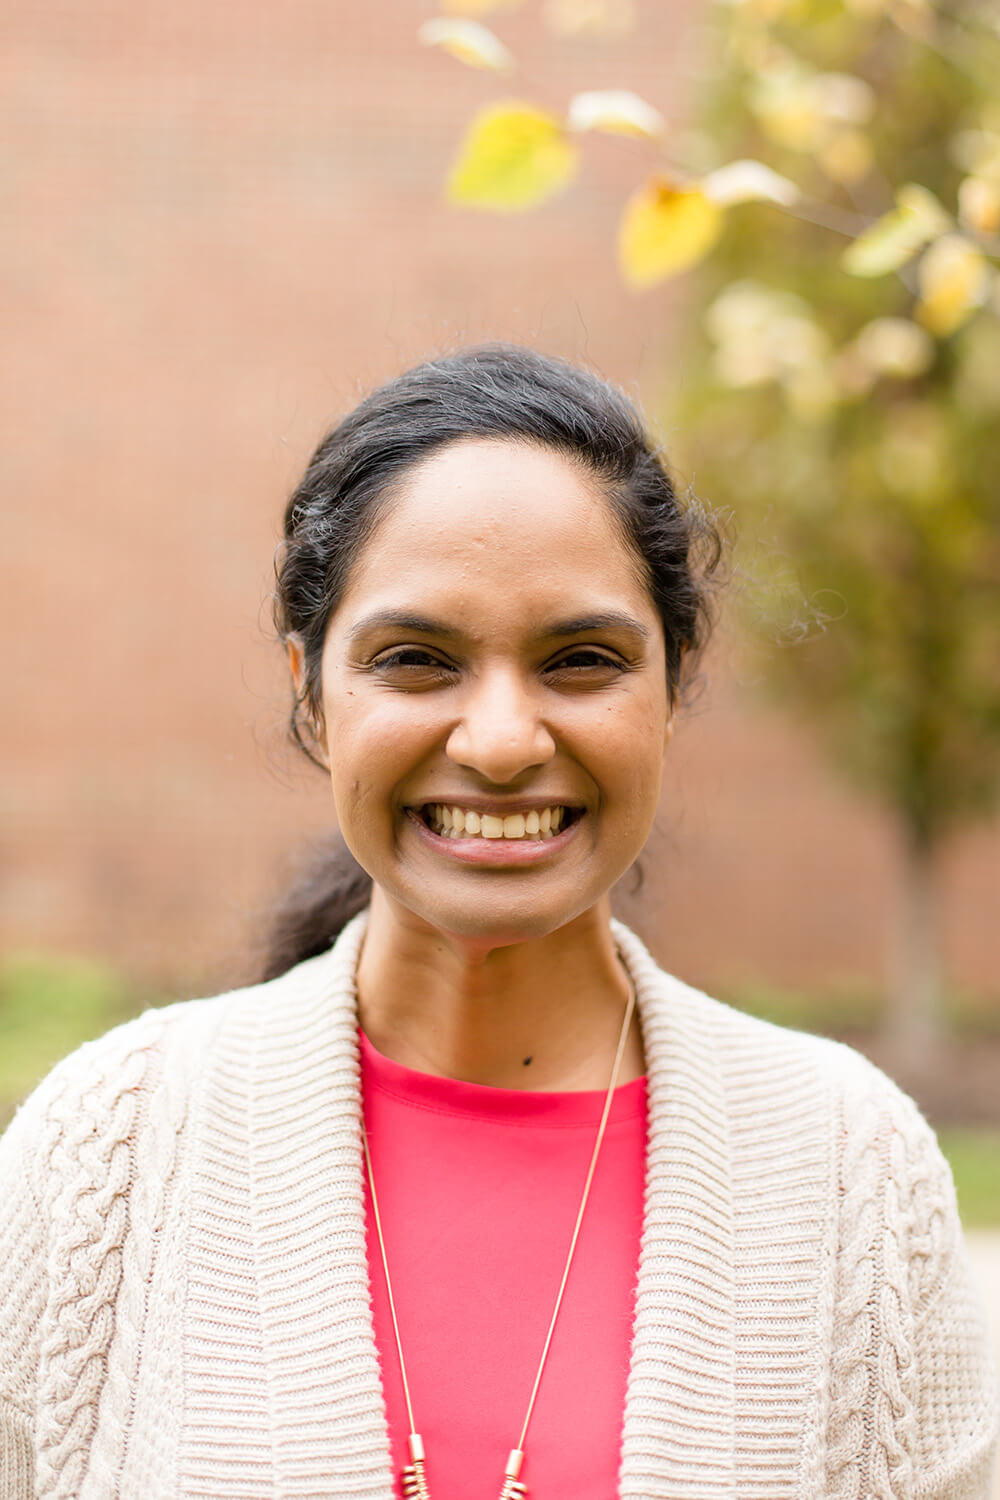 Research led by graduate student Frances Lobo finds parental emotion coaching protected youth from internalizing symptoms in the context of greater family stress